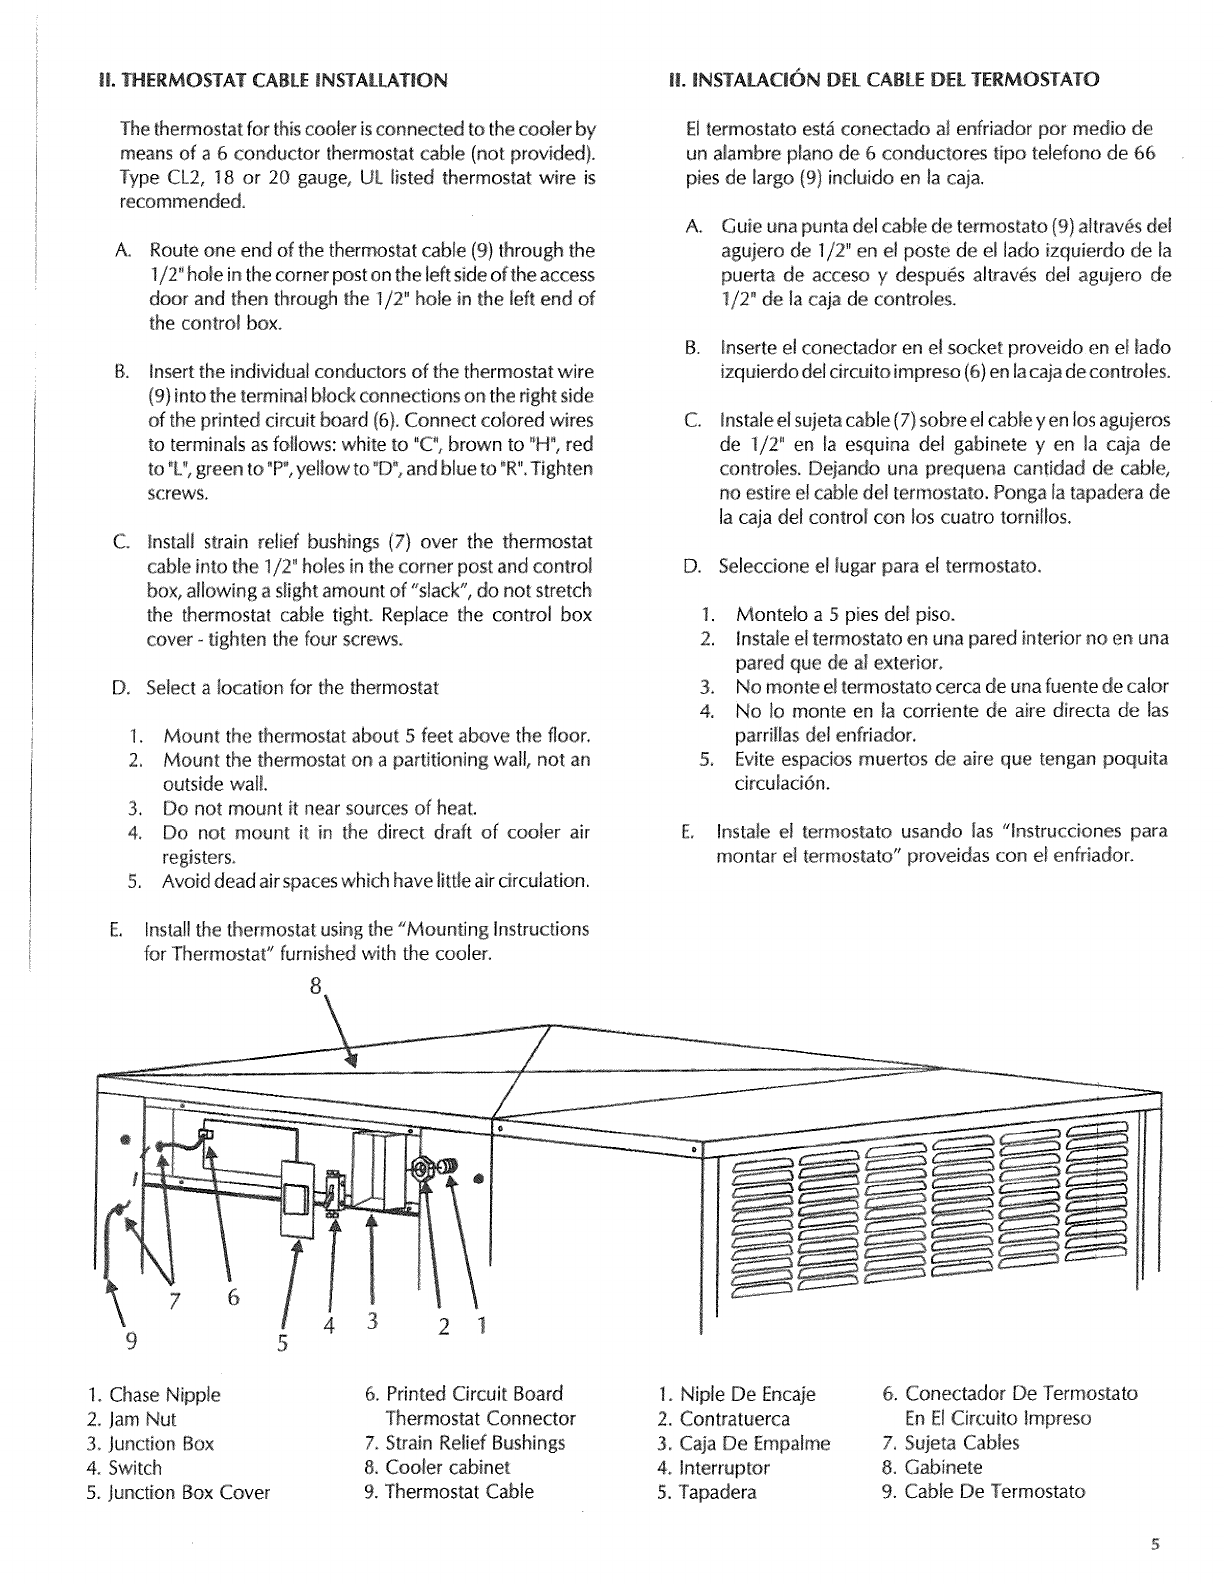 Page 5 Of Sears Air Conditioner Ph 4801 User Guide Manualsonlinecom Thermostat Wiring Red Black White Green Jl Cable Nstallation L Insta C N Del Termostato